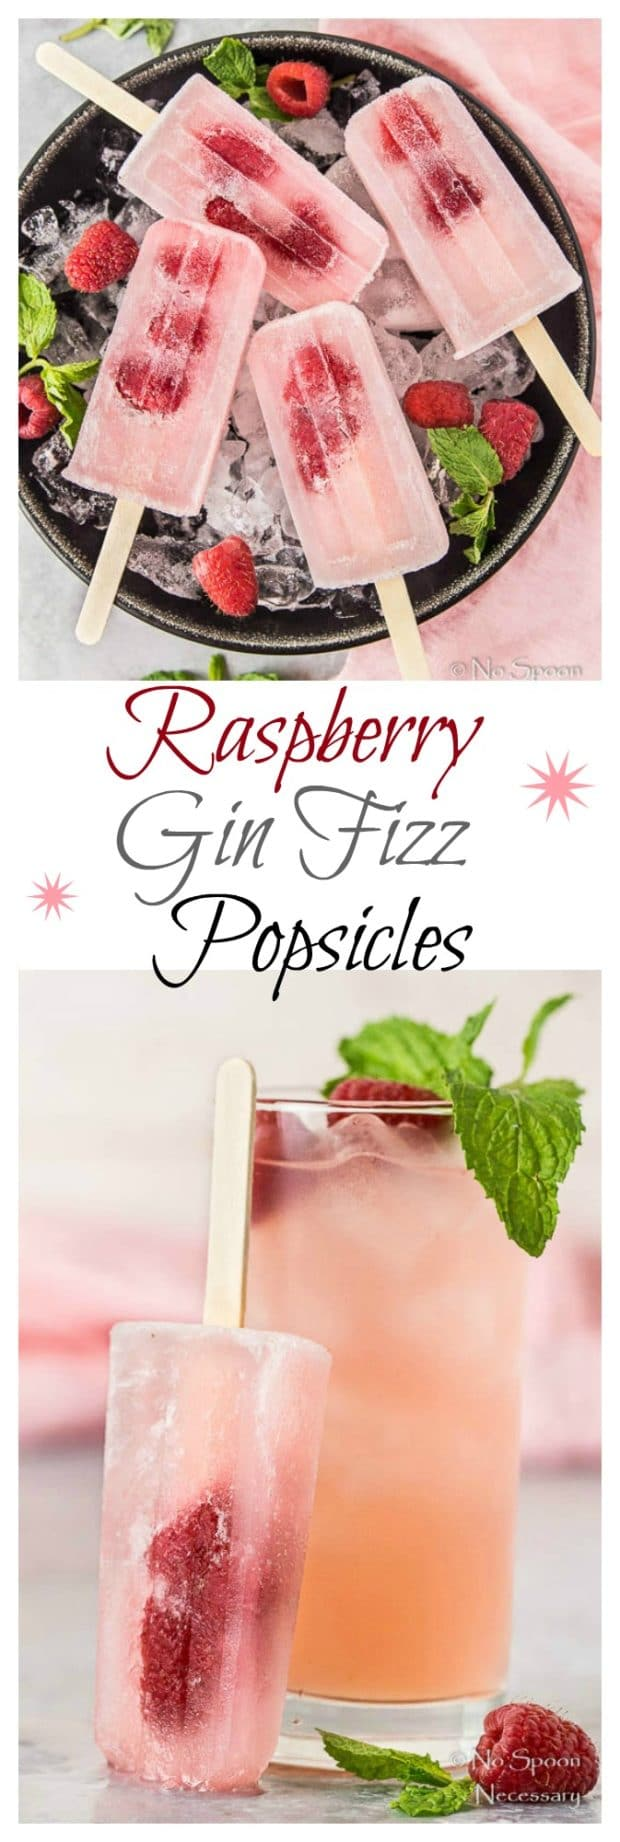 Raspberry Gin Fizz Popsicles - Poptails-7- long pin1